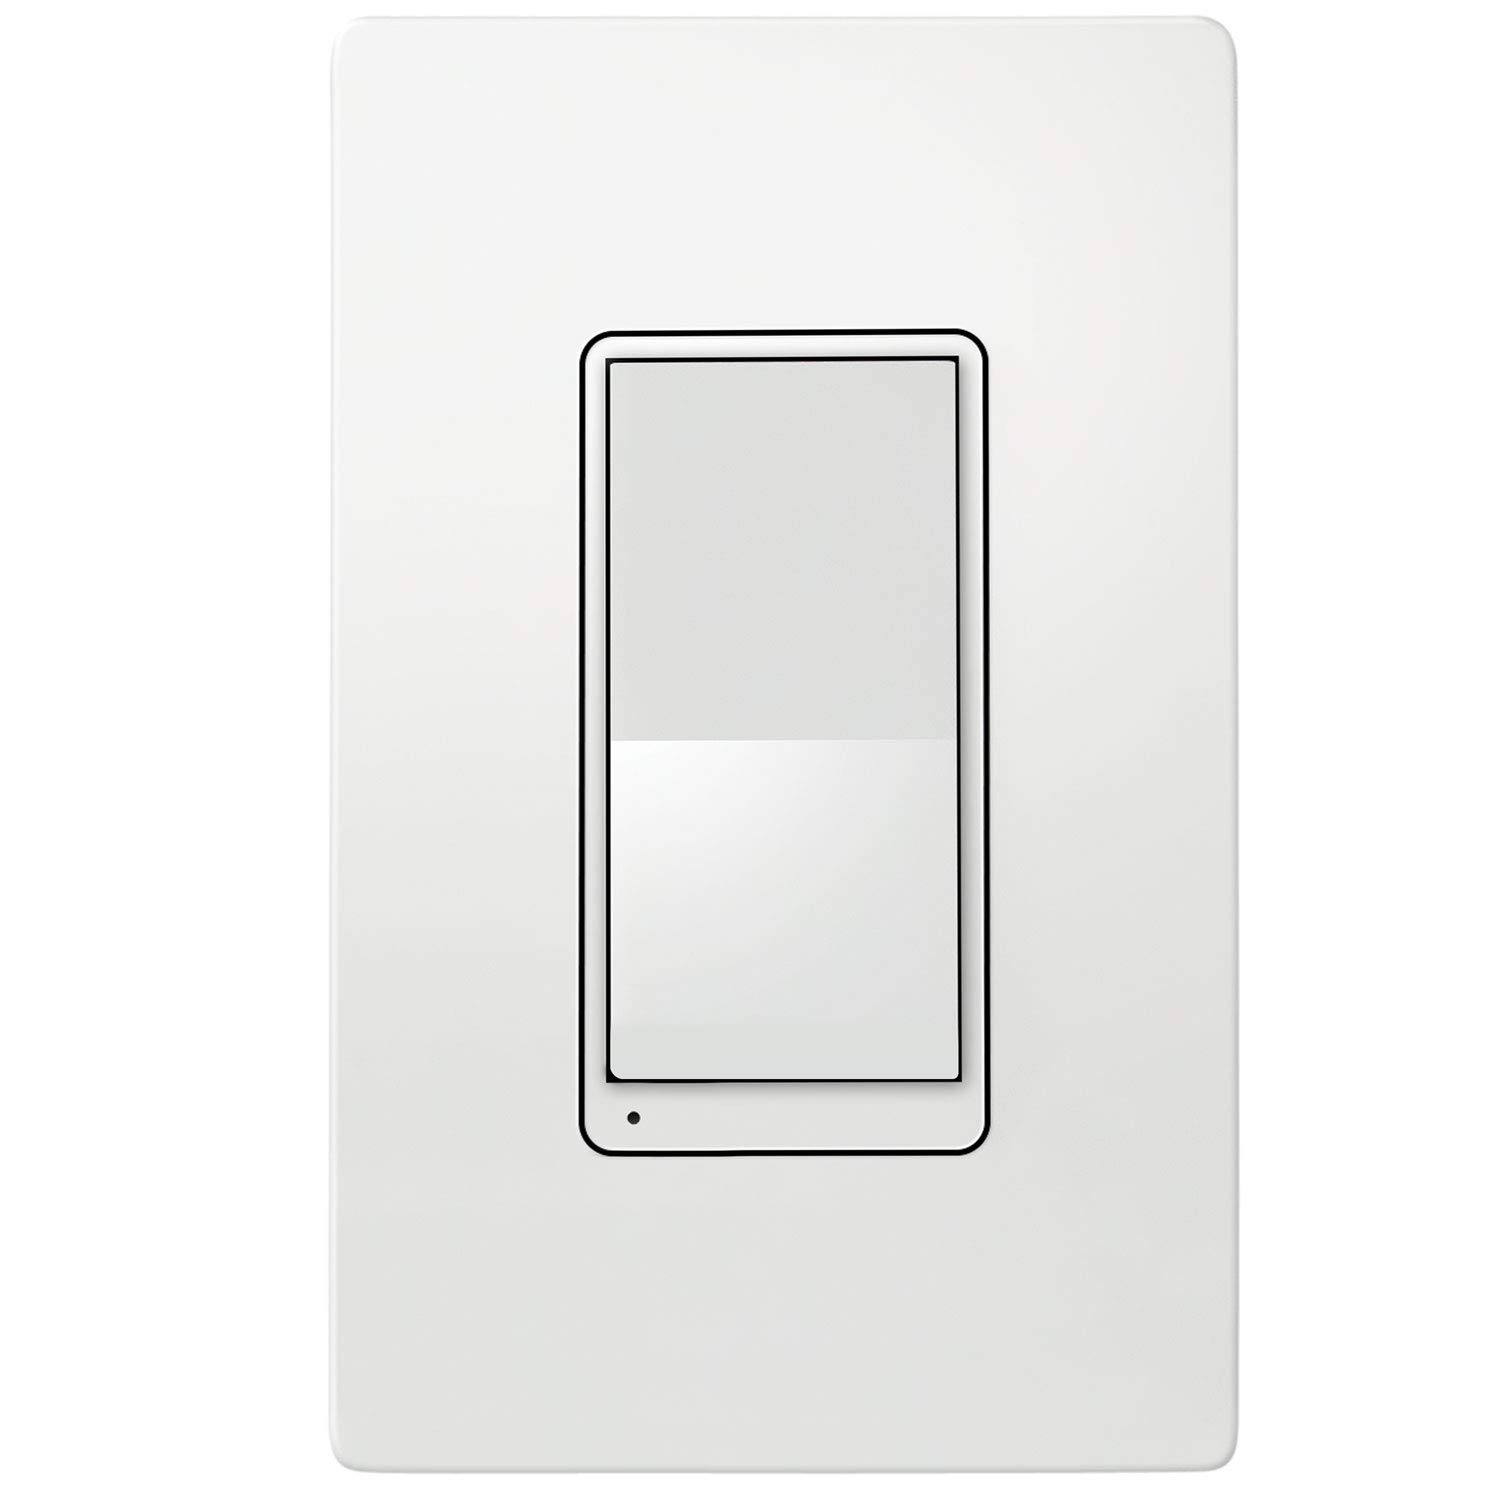 Best Rated In Electrical Light Switches Helpful Customer Reviews Wiring Spst Lighted Rocker To Split Duplex Receptacles Topgreener Add On Switch For Tgwf500d Wi Fi Dimmer Cannot Be Used As